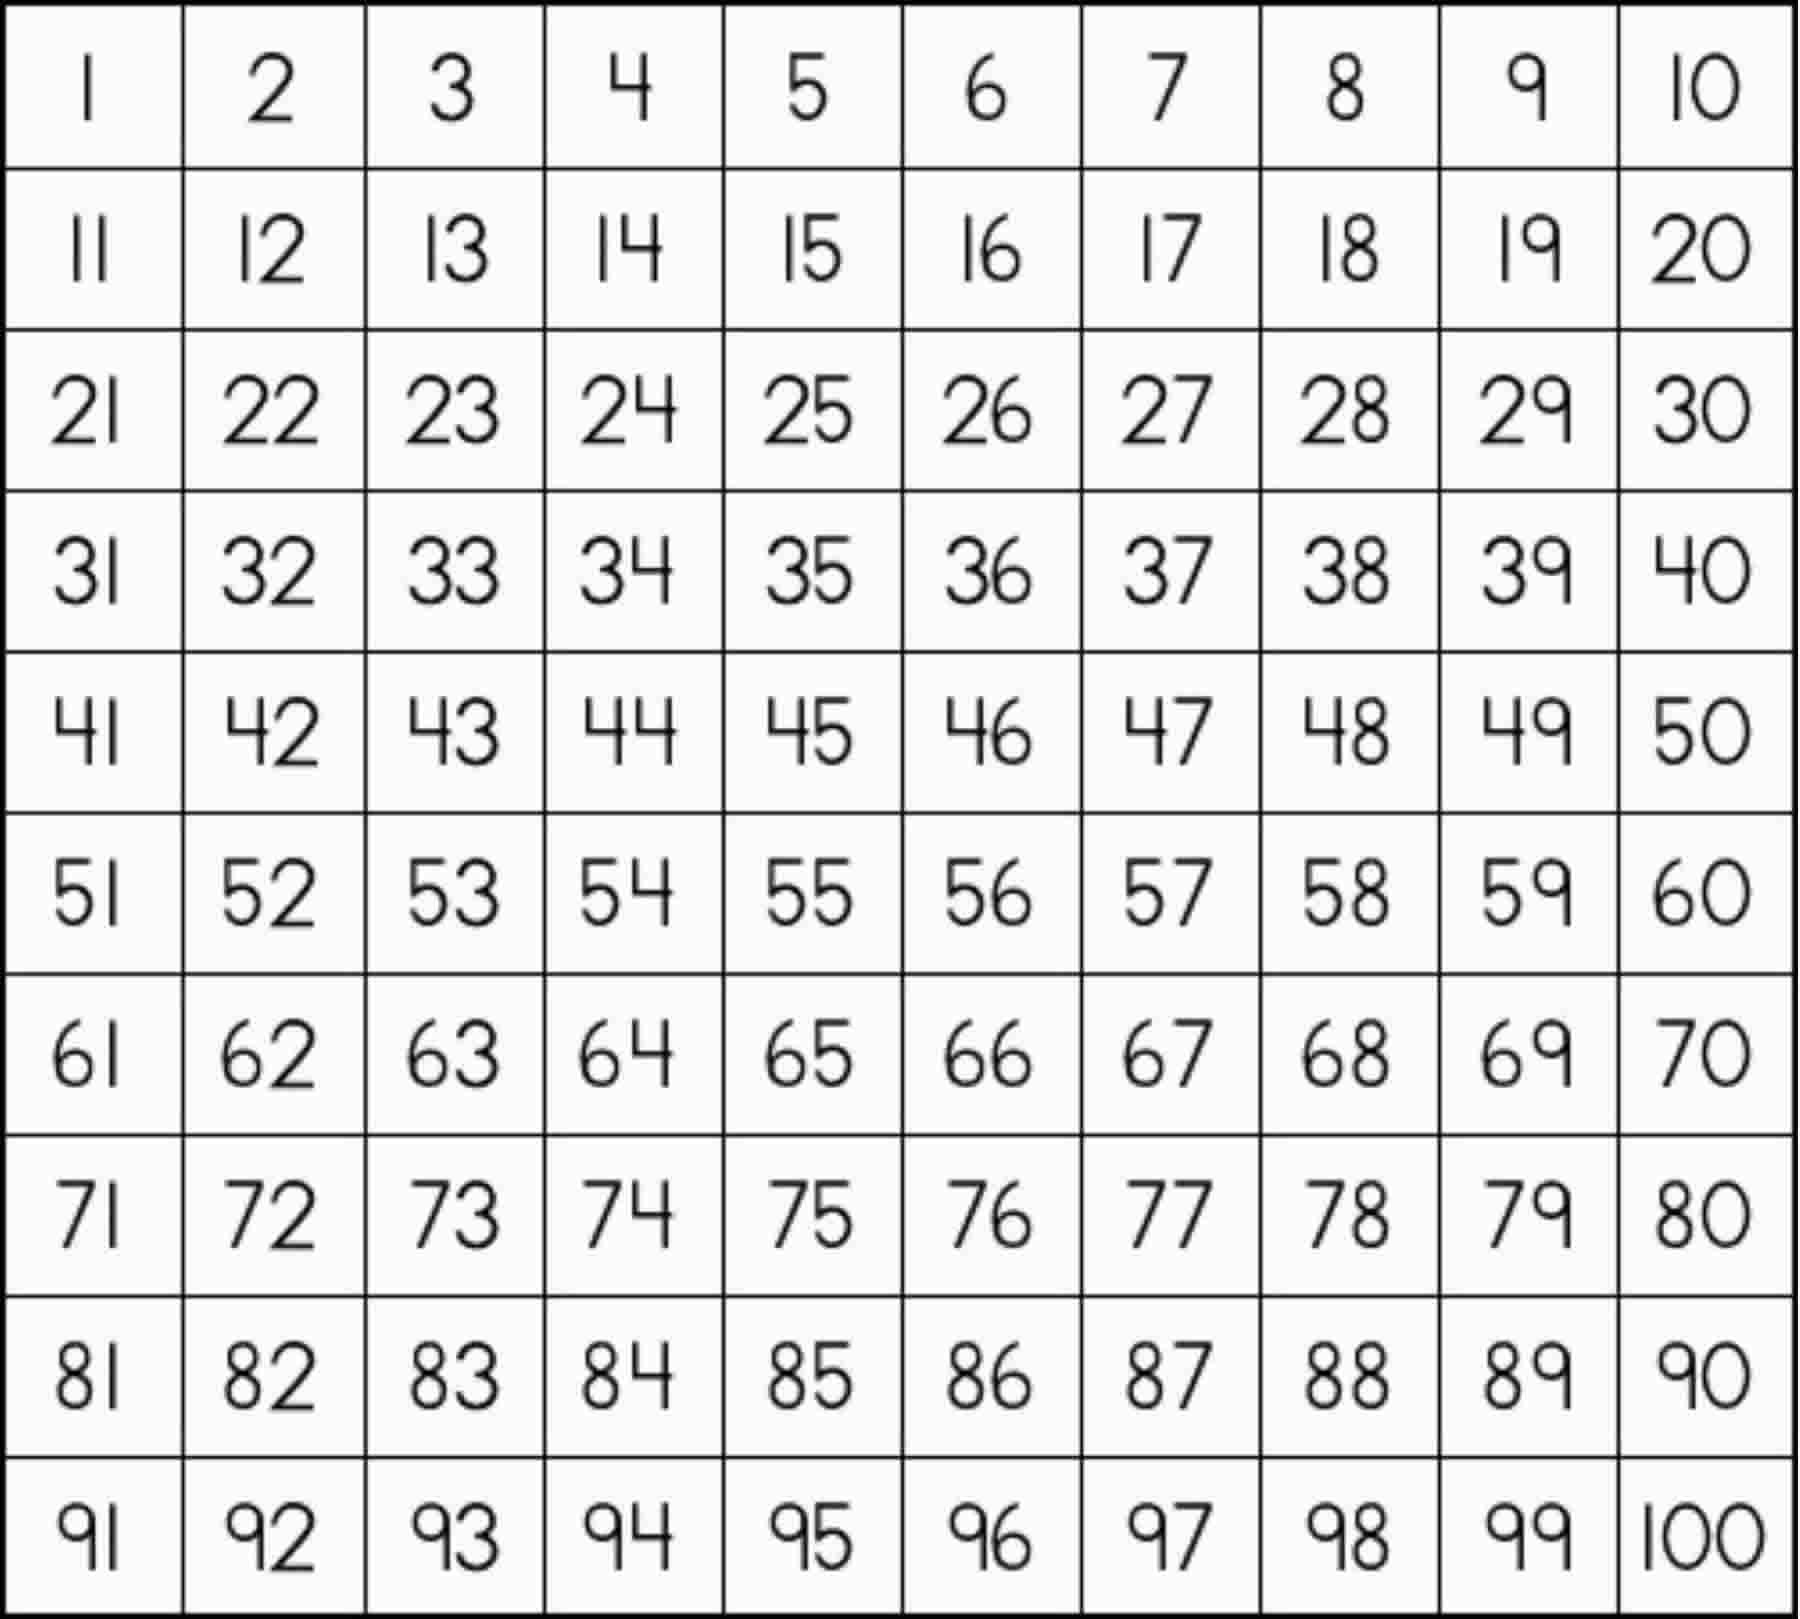 photograph relating to Printable Numbers 1 100 identify Range Sheet 1-100 towards Print Video game Shelter